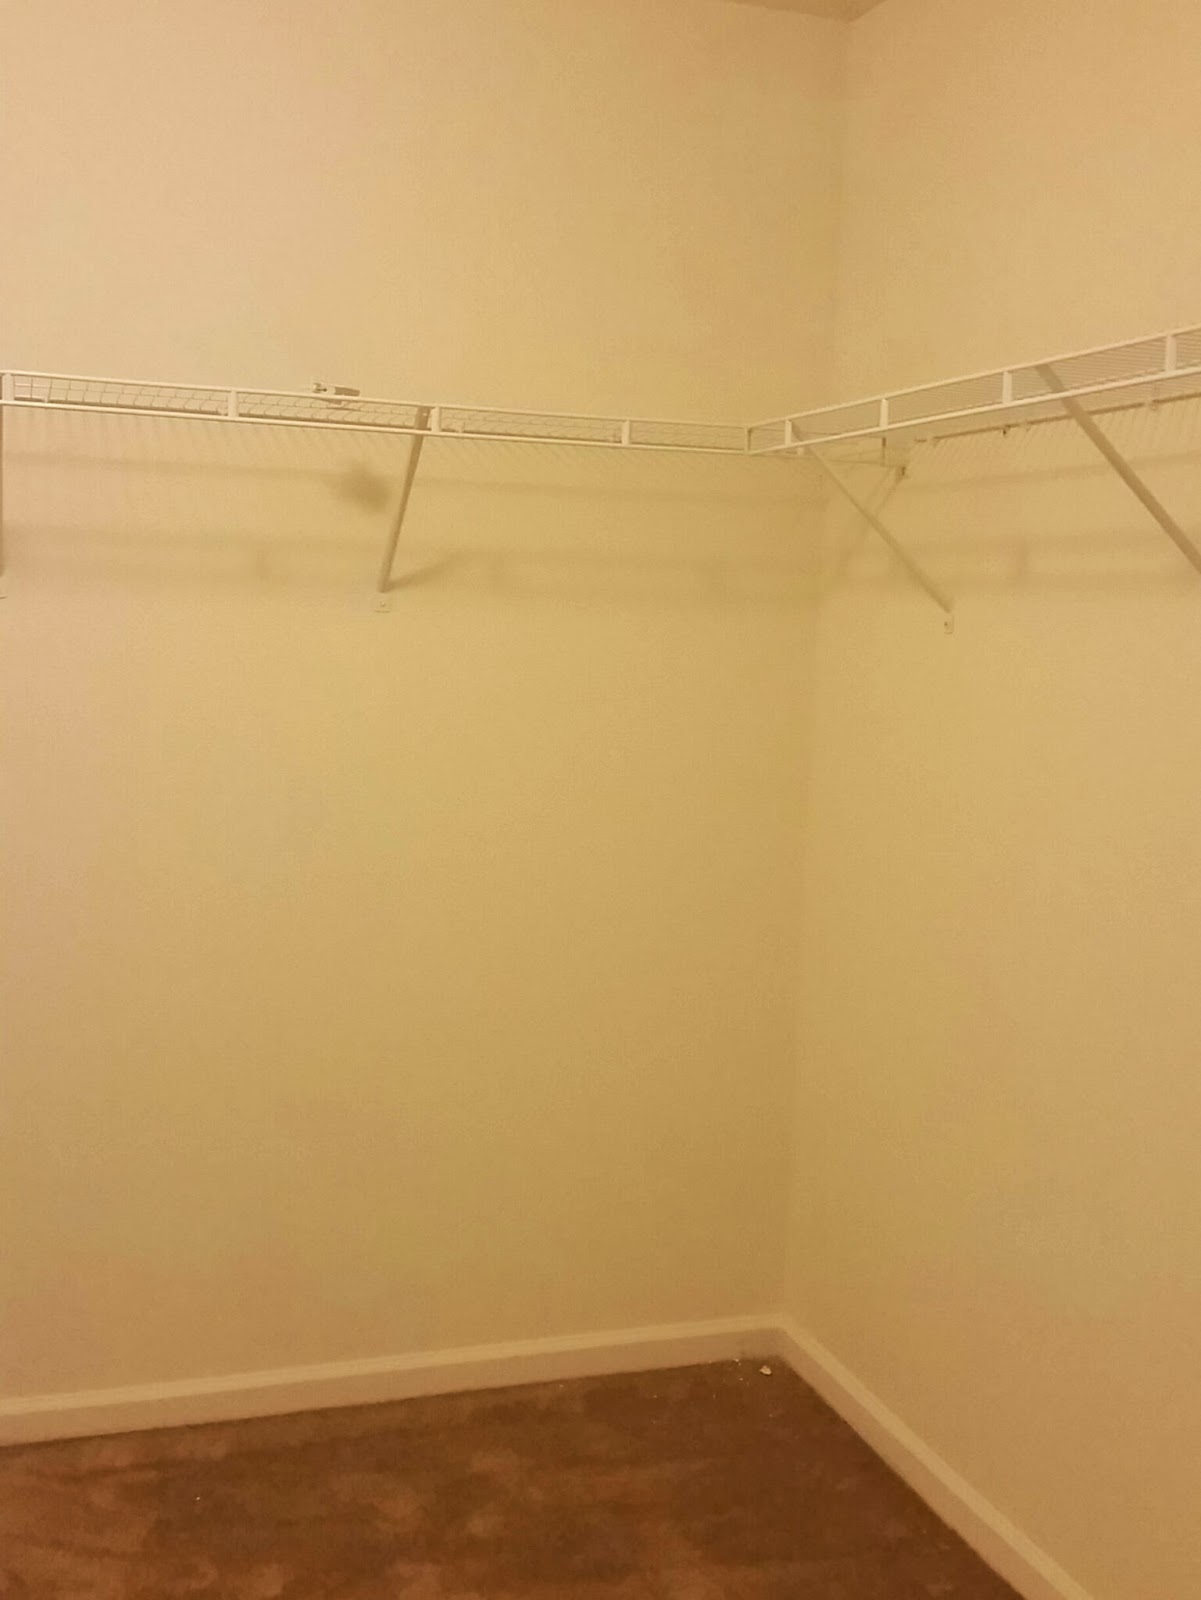 Closet Shelving Is In